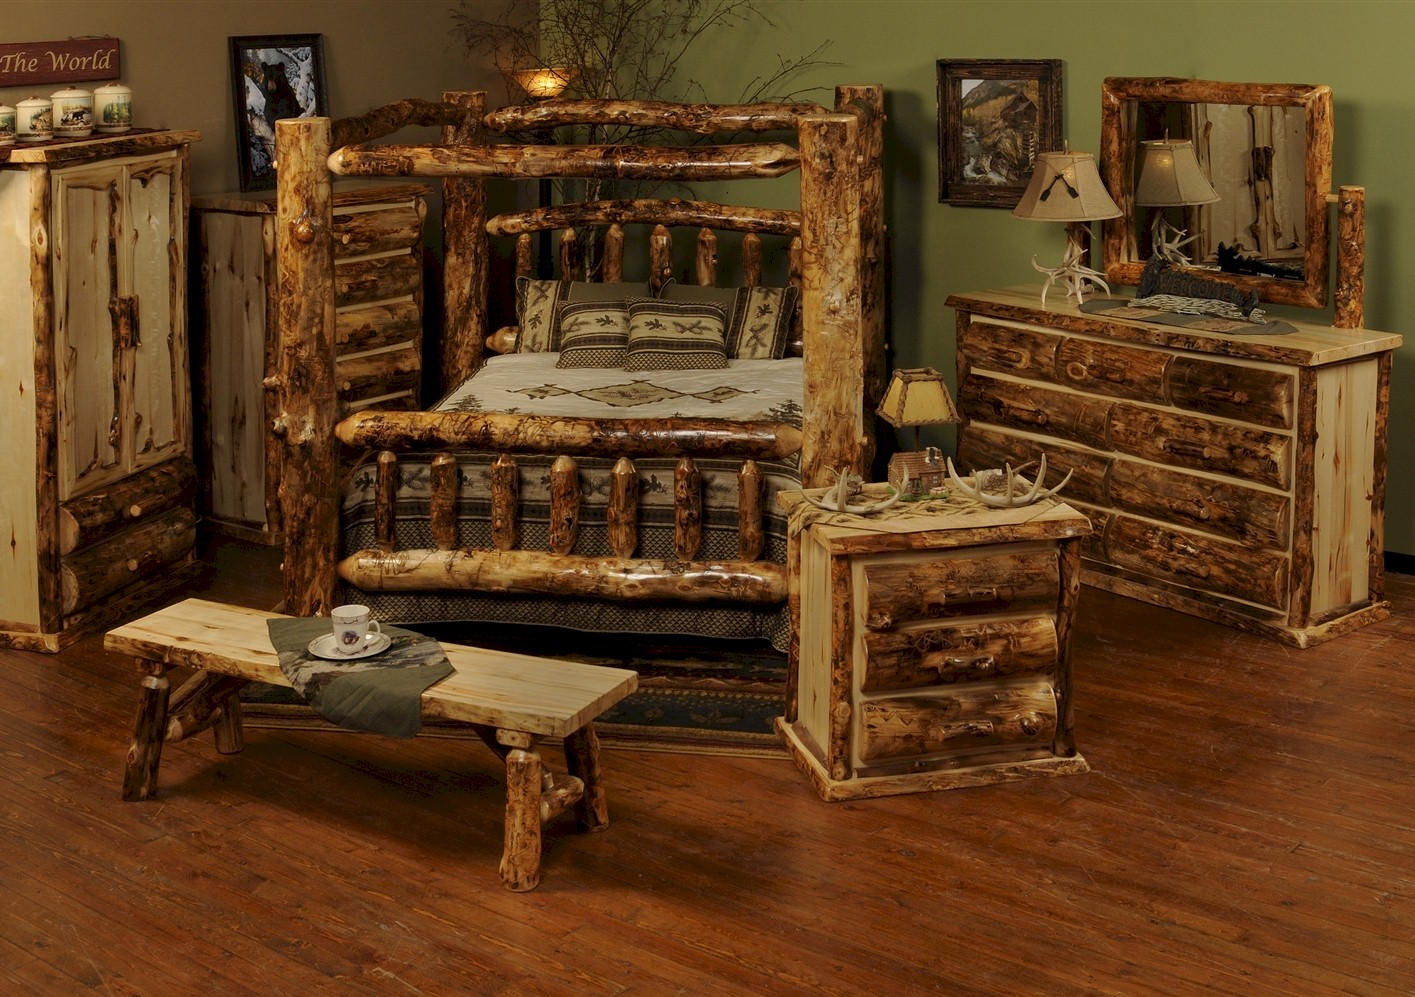 Image of: Aspen bedroom furniture set